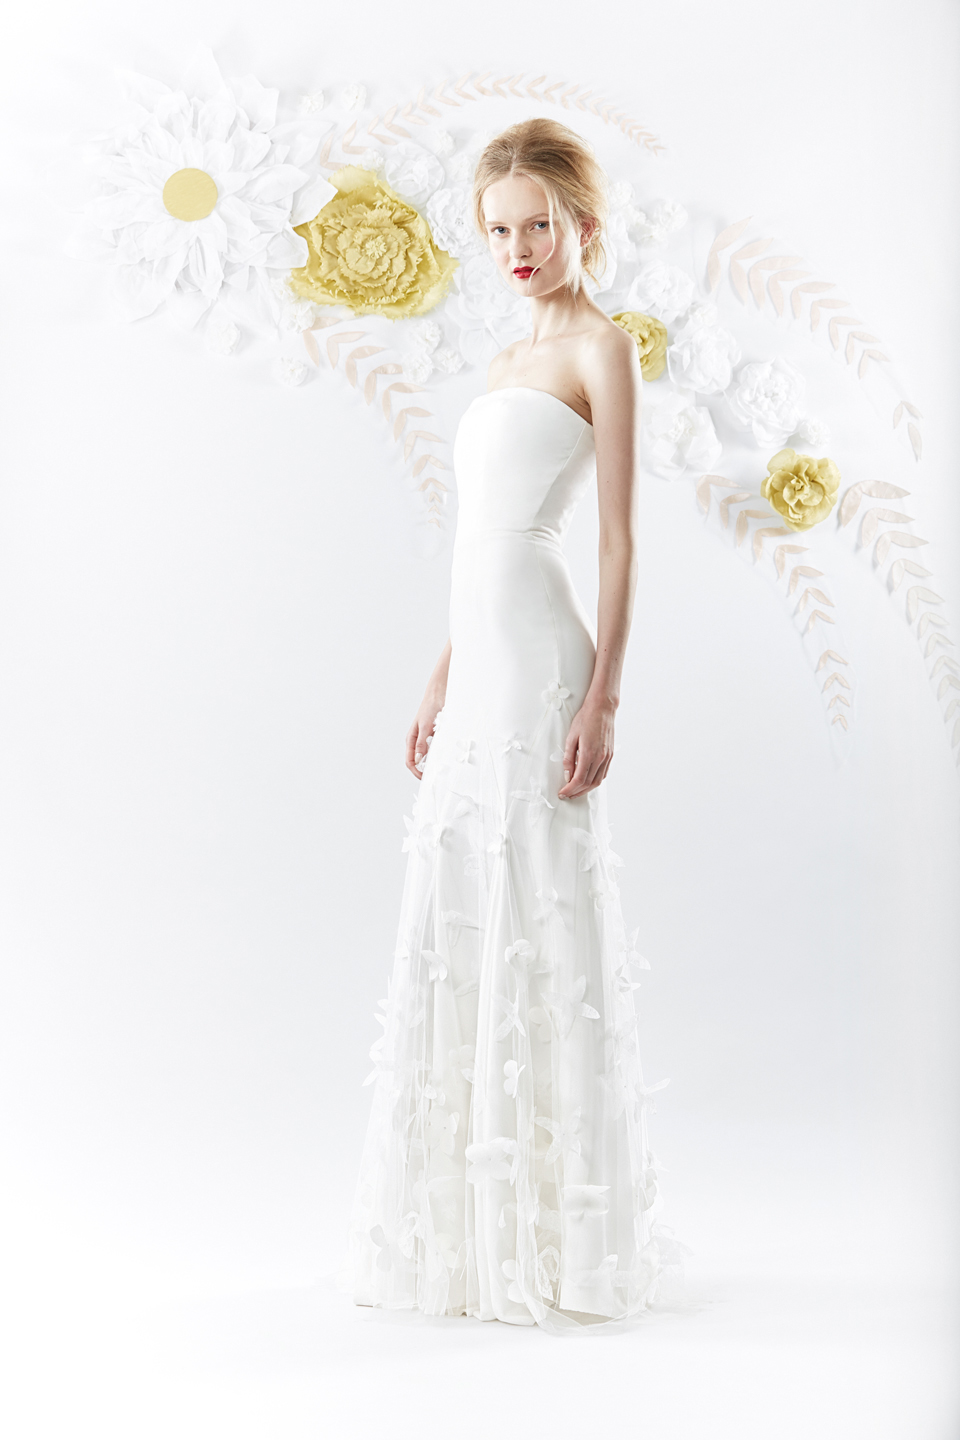 d8528f9dad9 wpid Olwen Bourke nature inspired wedding dresses - Olwen Bourke  Beautiful  Couture Gowns Inspired By